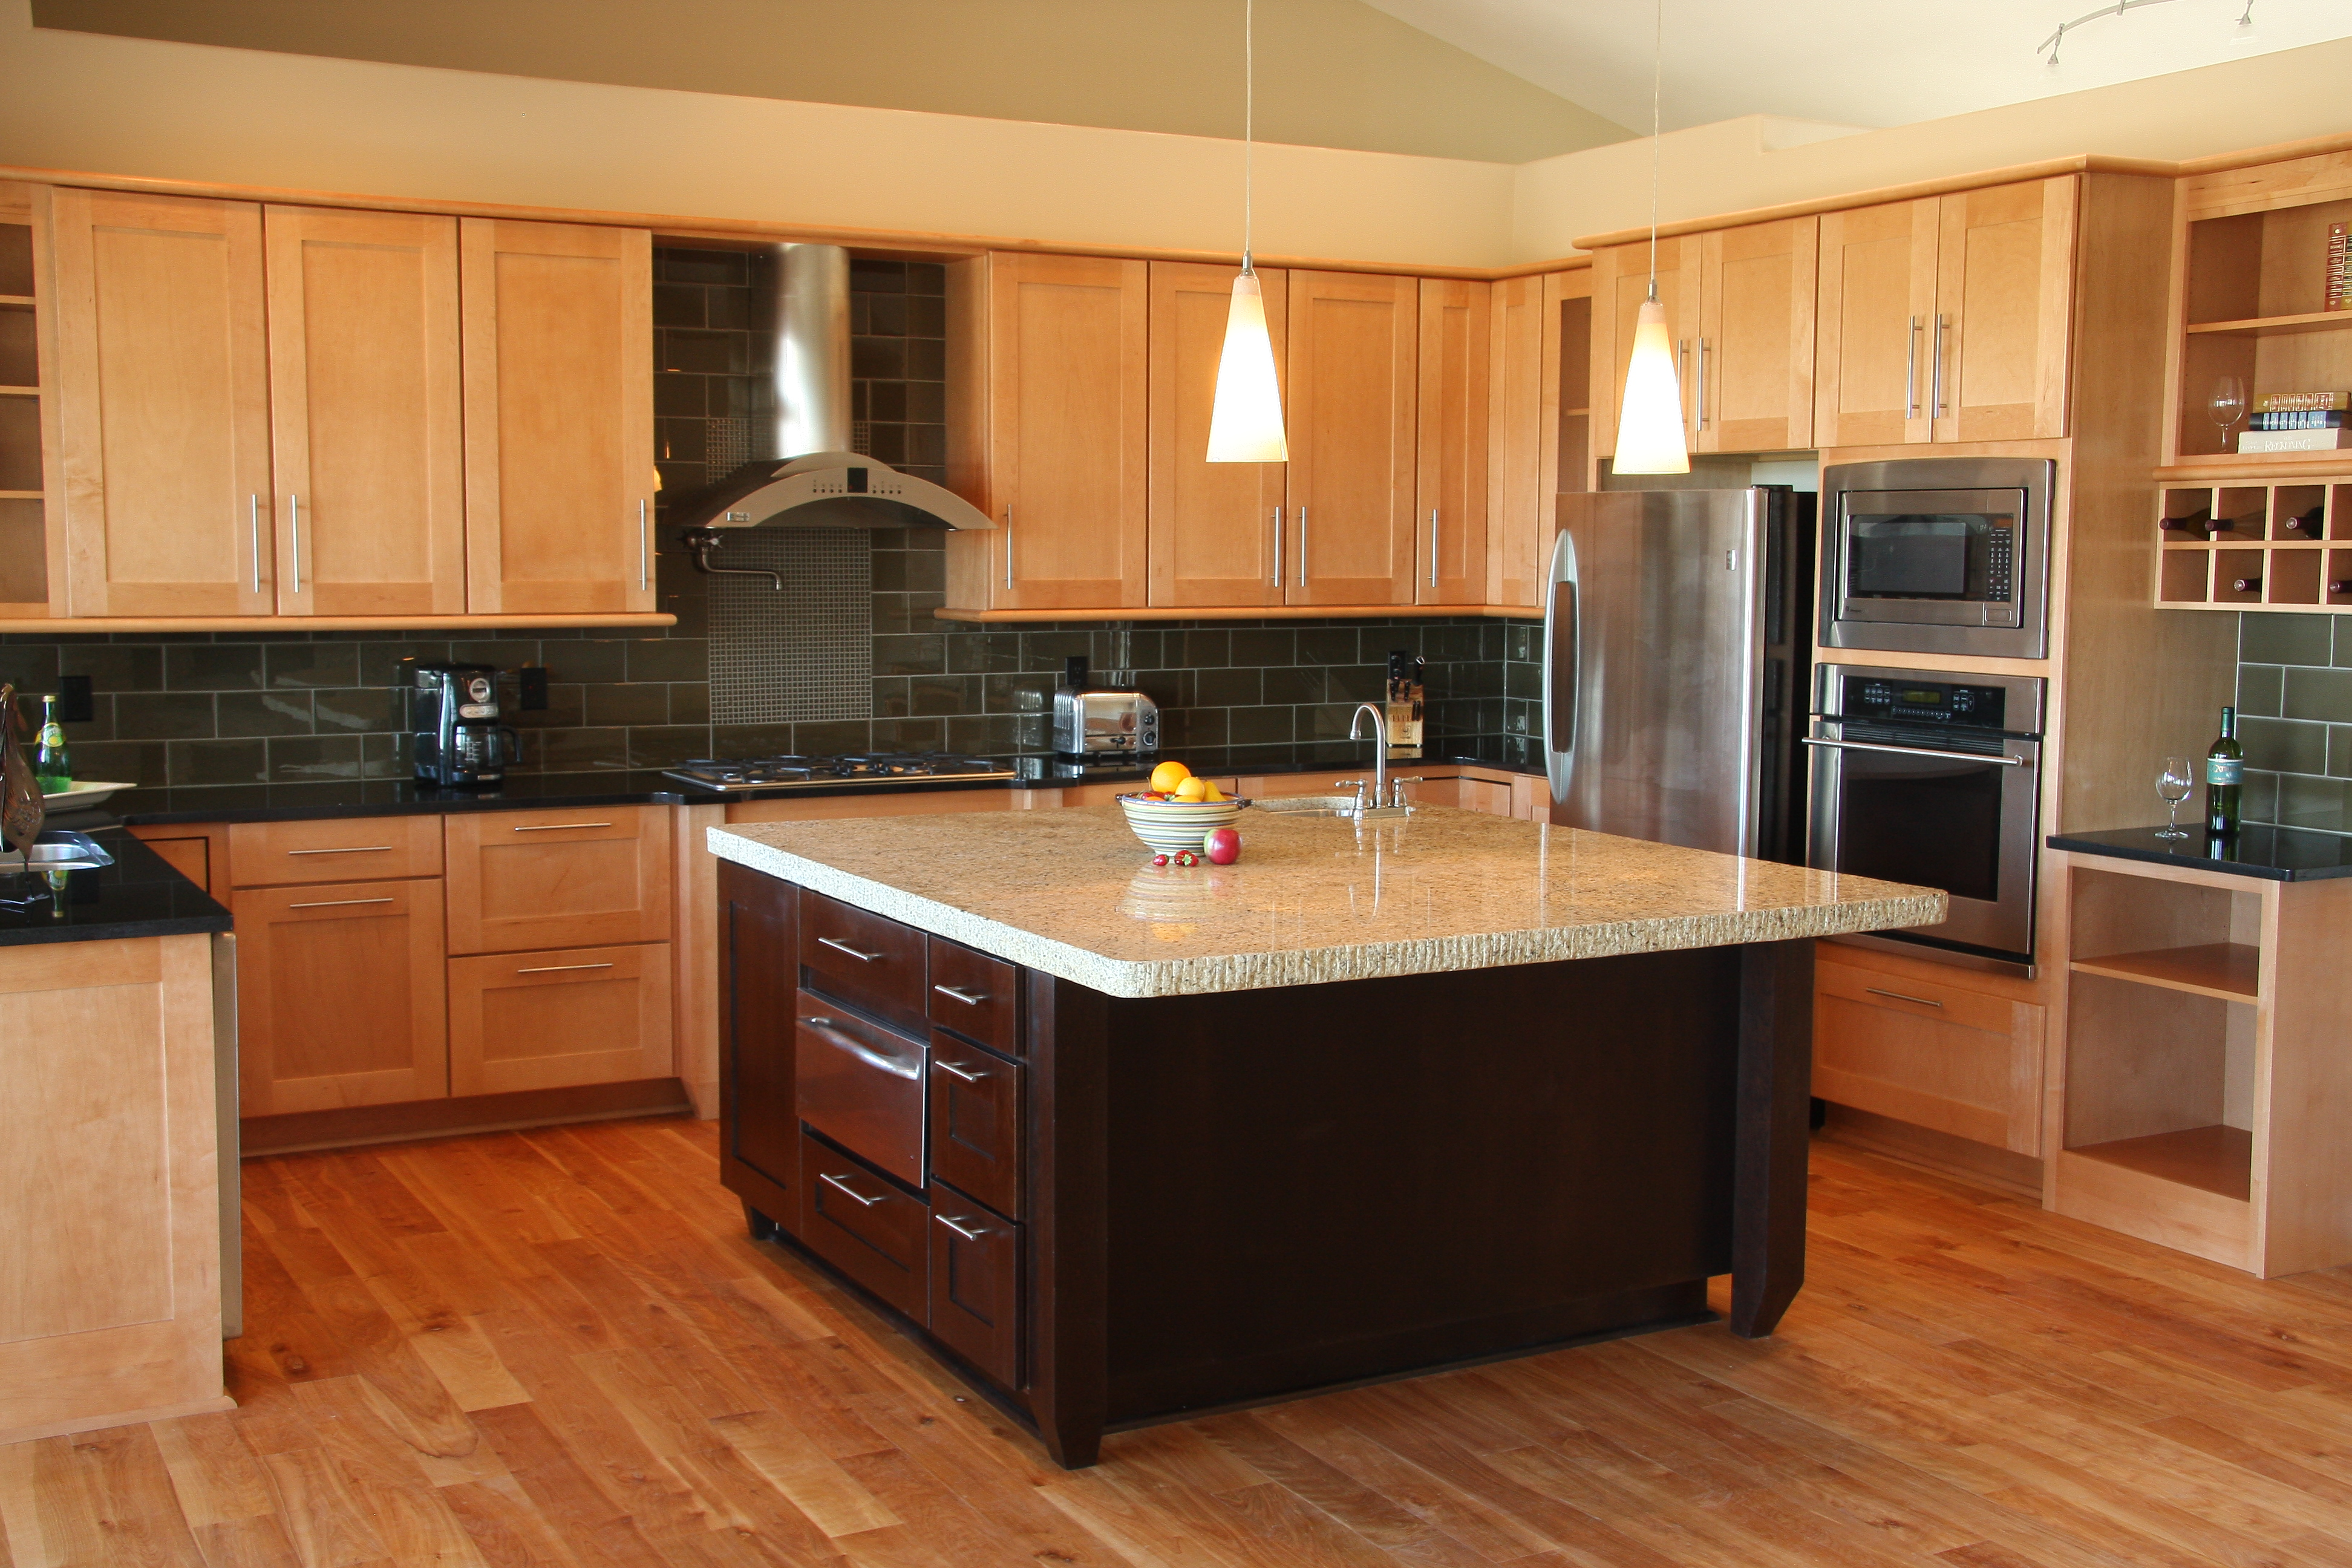 The Kitchen Places Basics To Consider Before Purchasing New